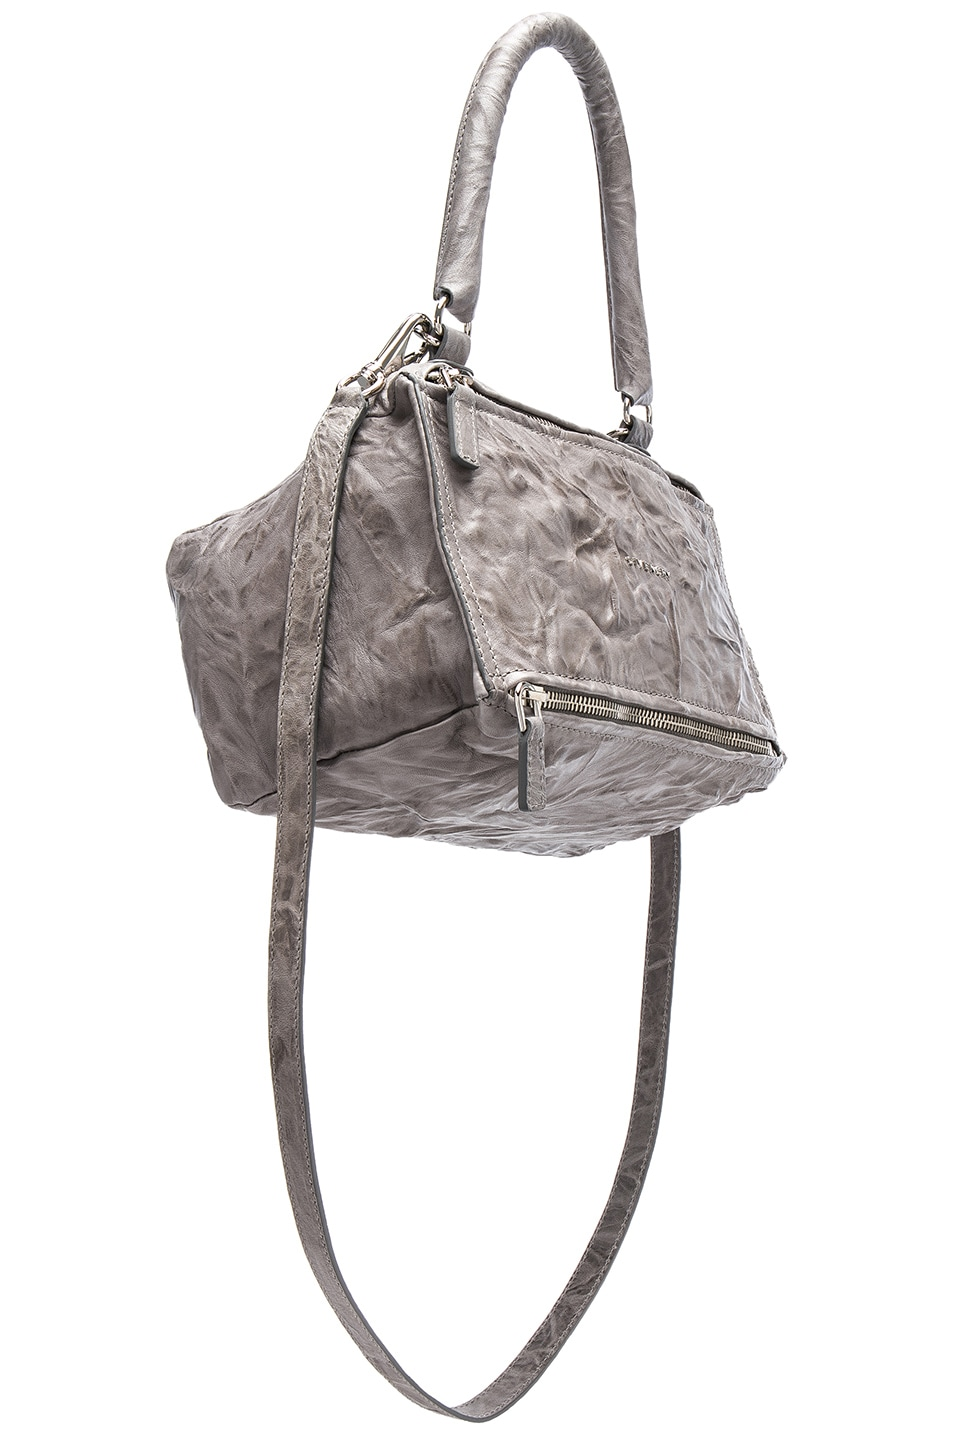 4b8263e6468 ... Givenchy Pandora Old Pepe Small Leather Shoulder Bag In Gray new style  64dc1 1cb13 ...